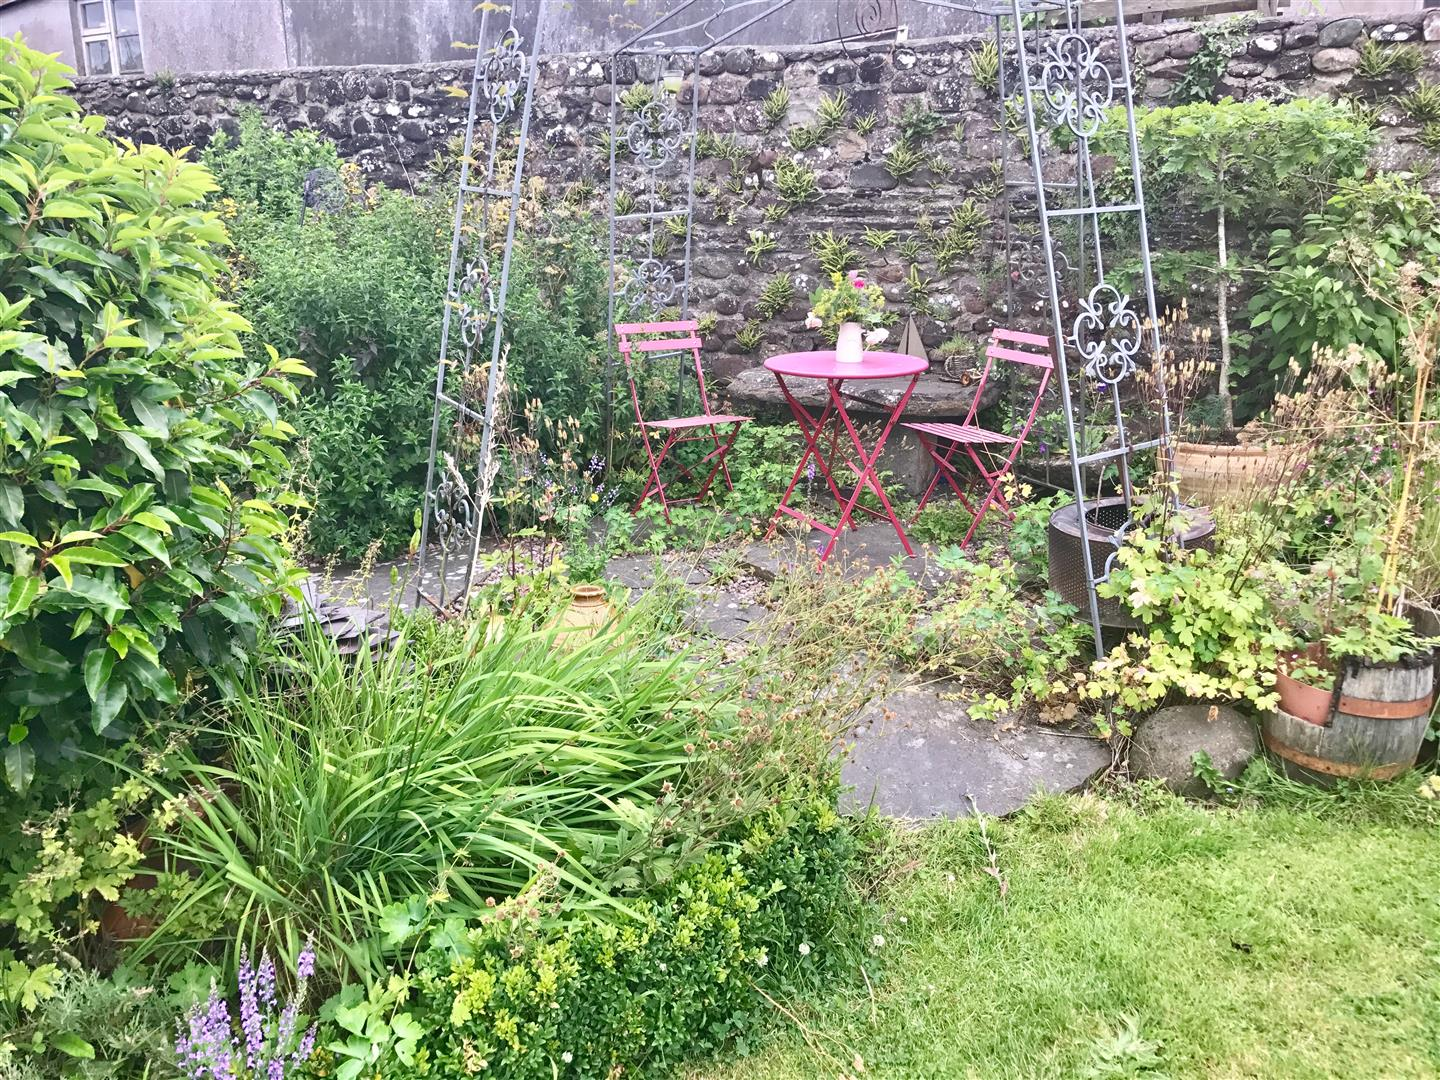 SIDE GARDEN AND SITTING AREA